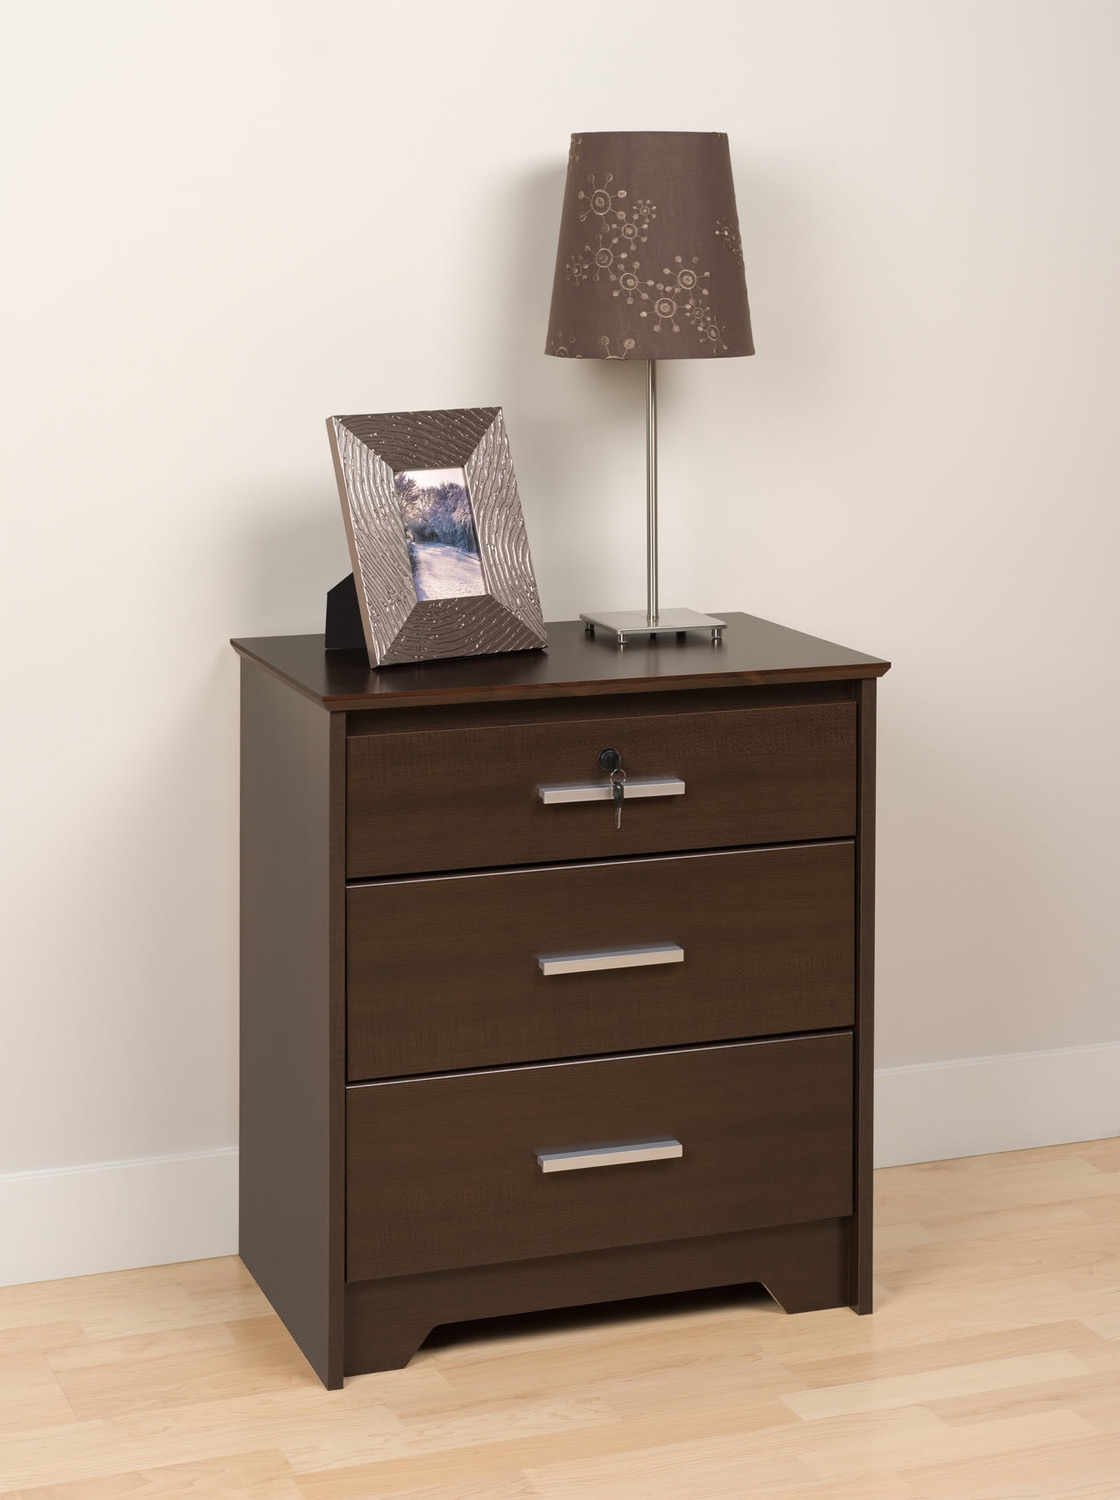 Prepac Coal Harbor 3 Drawer Tall & Wide Night Stand with Lock - Espresso